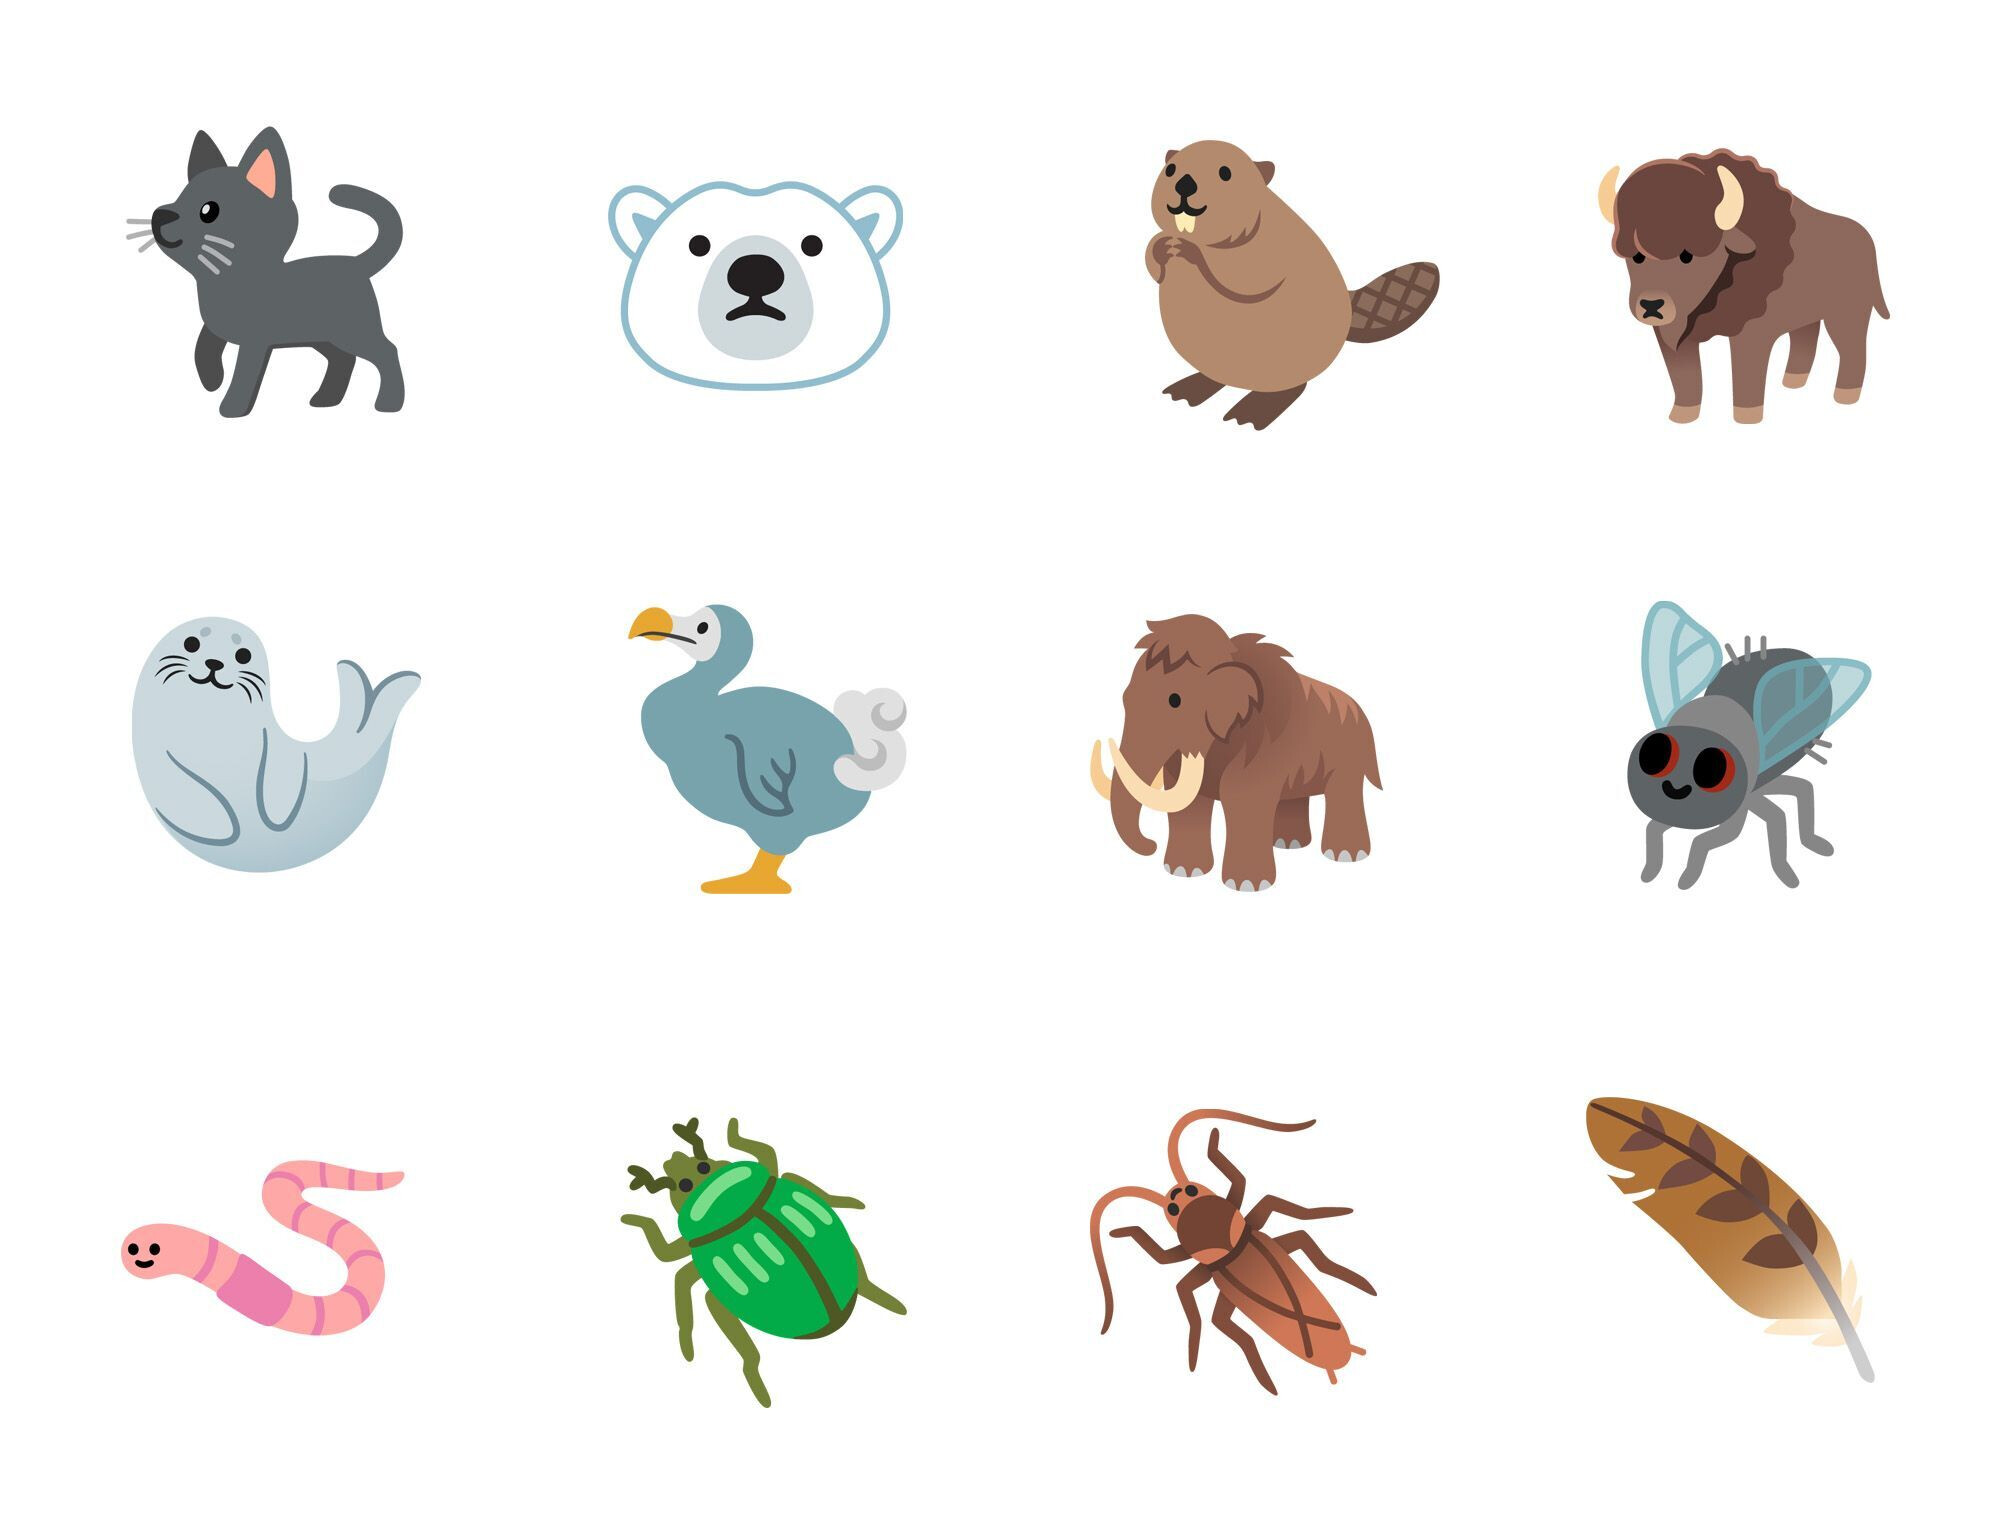 New animal emoji in Android 11 - These are all the new Android 11 emoji coming to your phone